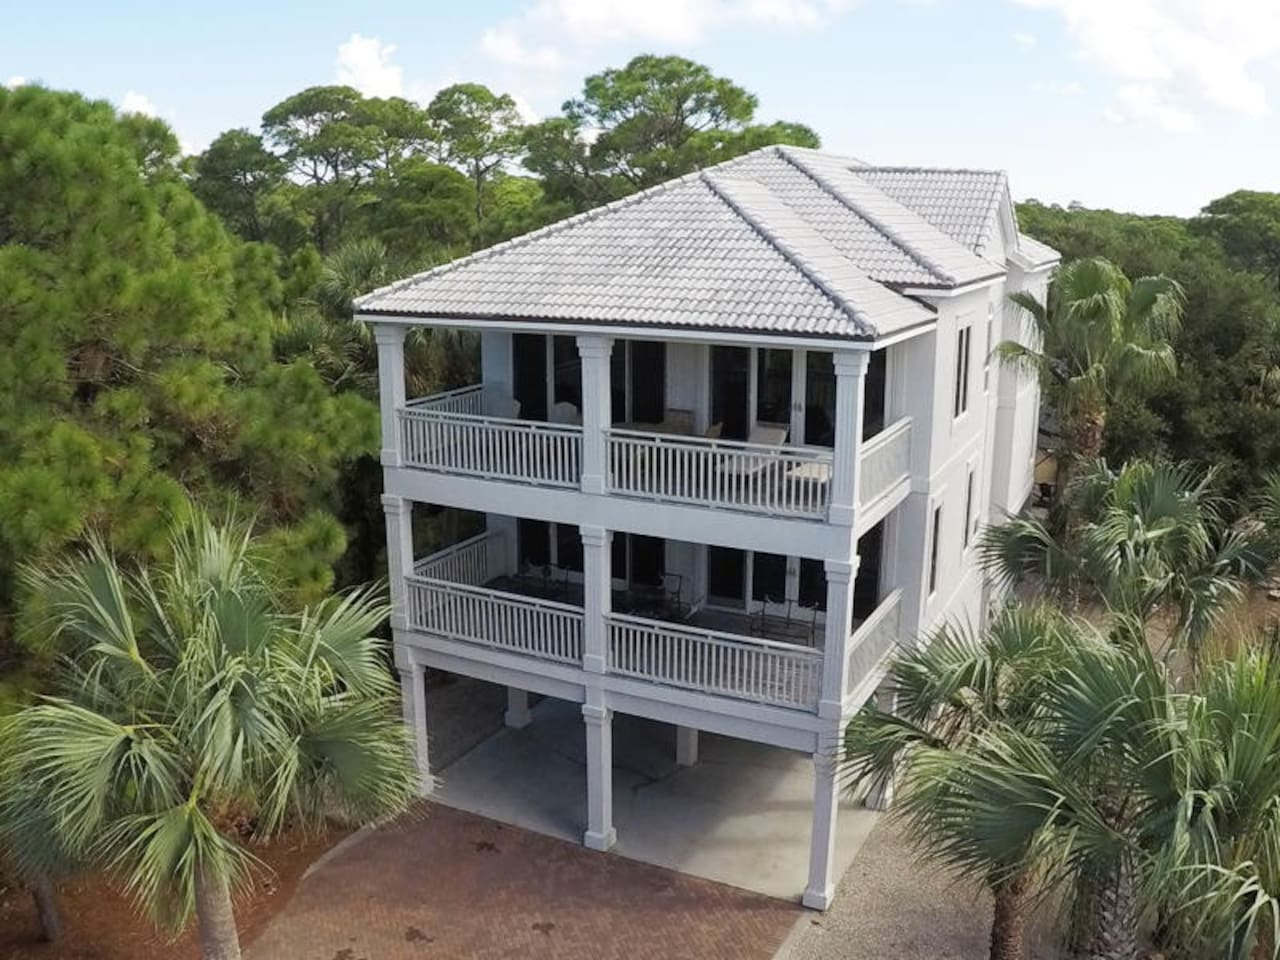 SUNSATION IS YOUR PREMIER DESTINATION! This stunning home is tucked back on a beautifully landscaped lot within the exclusive gated community called Schooner Landing.This lovely home is just steps away from the marvelous Bob Sikes Cut with gorgeous views of the gulf and little St. George Island! The perfect getaway for fishing, shelling or watching the dolphins play in the surf! This dazzling home has 5 bedrooms with their own private bathrooms! A large ground level bedroom has been prepared as the kid's bunk room, set up with 2 single bunks, TV and private bathroom. The 1st level is the main bedroom level, with 2 guests suites; one with a king bed and the other guest suite with 2 twin beds, a laundry room and a grand Master bedroom suite, with a Jacuzzi tub, morning kitchen, large screen TV and its own private covered porch. Up the stairs is the main living area with a generously appointed living room, new furniture and decor, a large TV, and opens to another large covered porch with some of the best views around.The open concept kitchen makes for ease of conversation and entertaining, with plenty of cabinet and counter space and even a large island with 3 bar stools. The dining room can easily accommodate seating for 8, so offering plenty of space for large family dinners. Just off the dining room is the half bath and another Master bedroom with a king bed and its own private bathroom. All bedrooms have sliding glass doors leading to expansive covered decks, with either beautiful views of the lush landscape, private screened enclosed pool and tennis courts or stunning views of the gulf, Bob Sikes Cut and our famous SGI sunsets! Don't miss your opportunity to experience the best St. George Island life for your family's vacation!